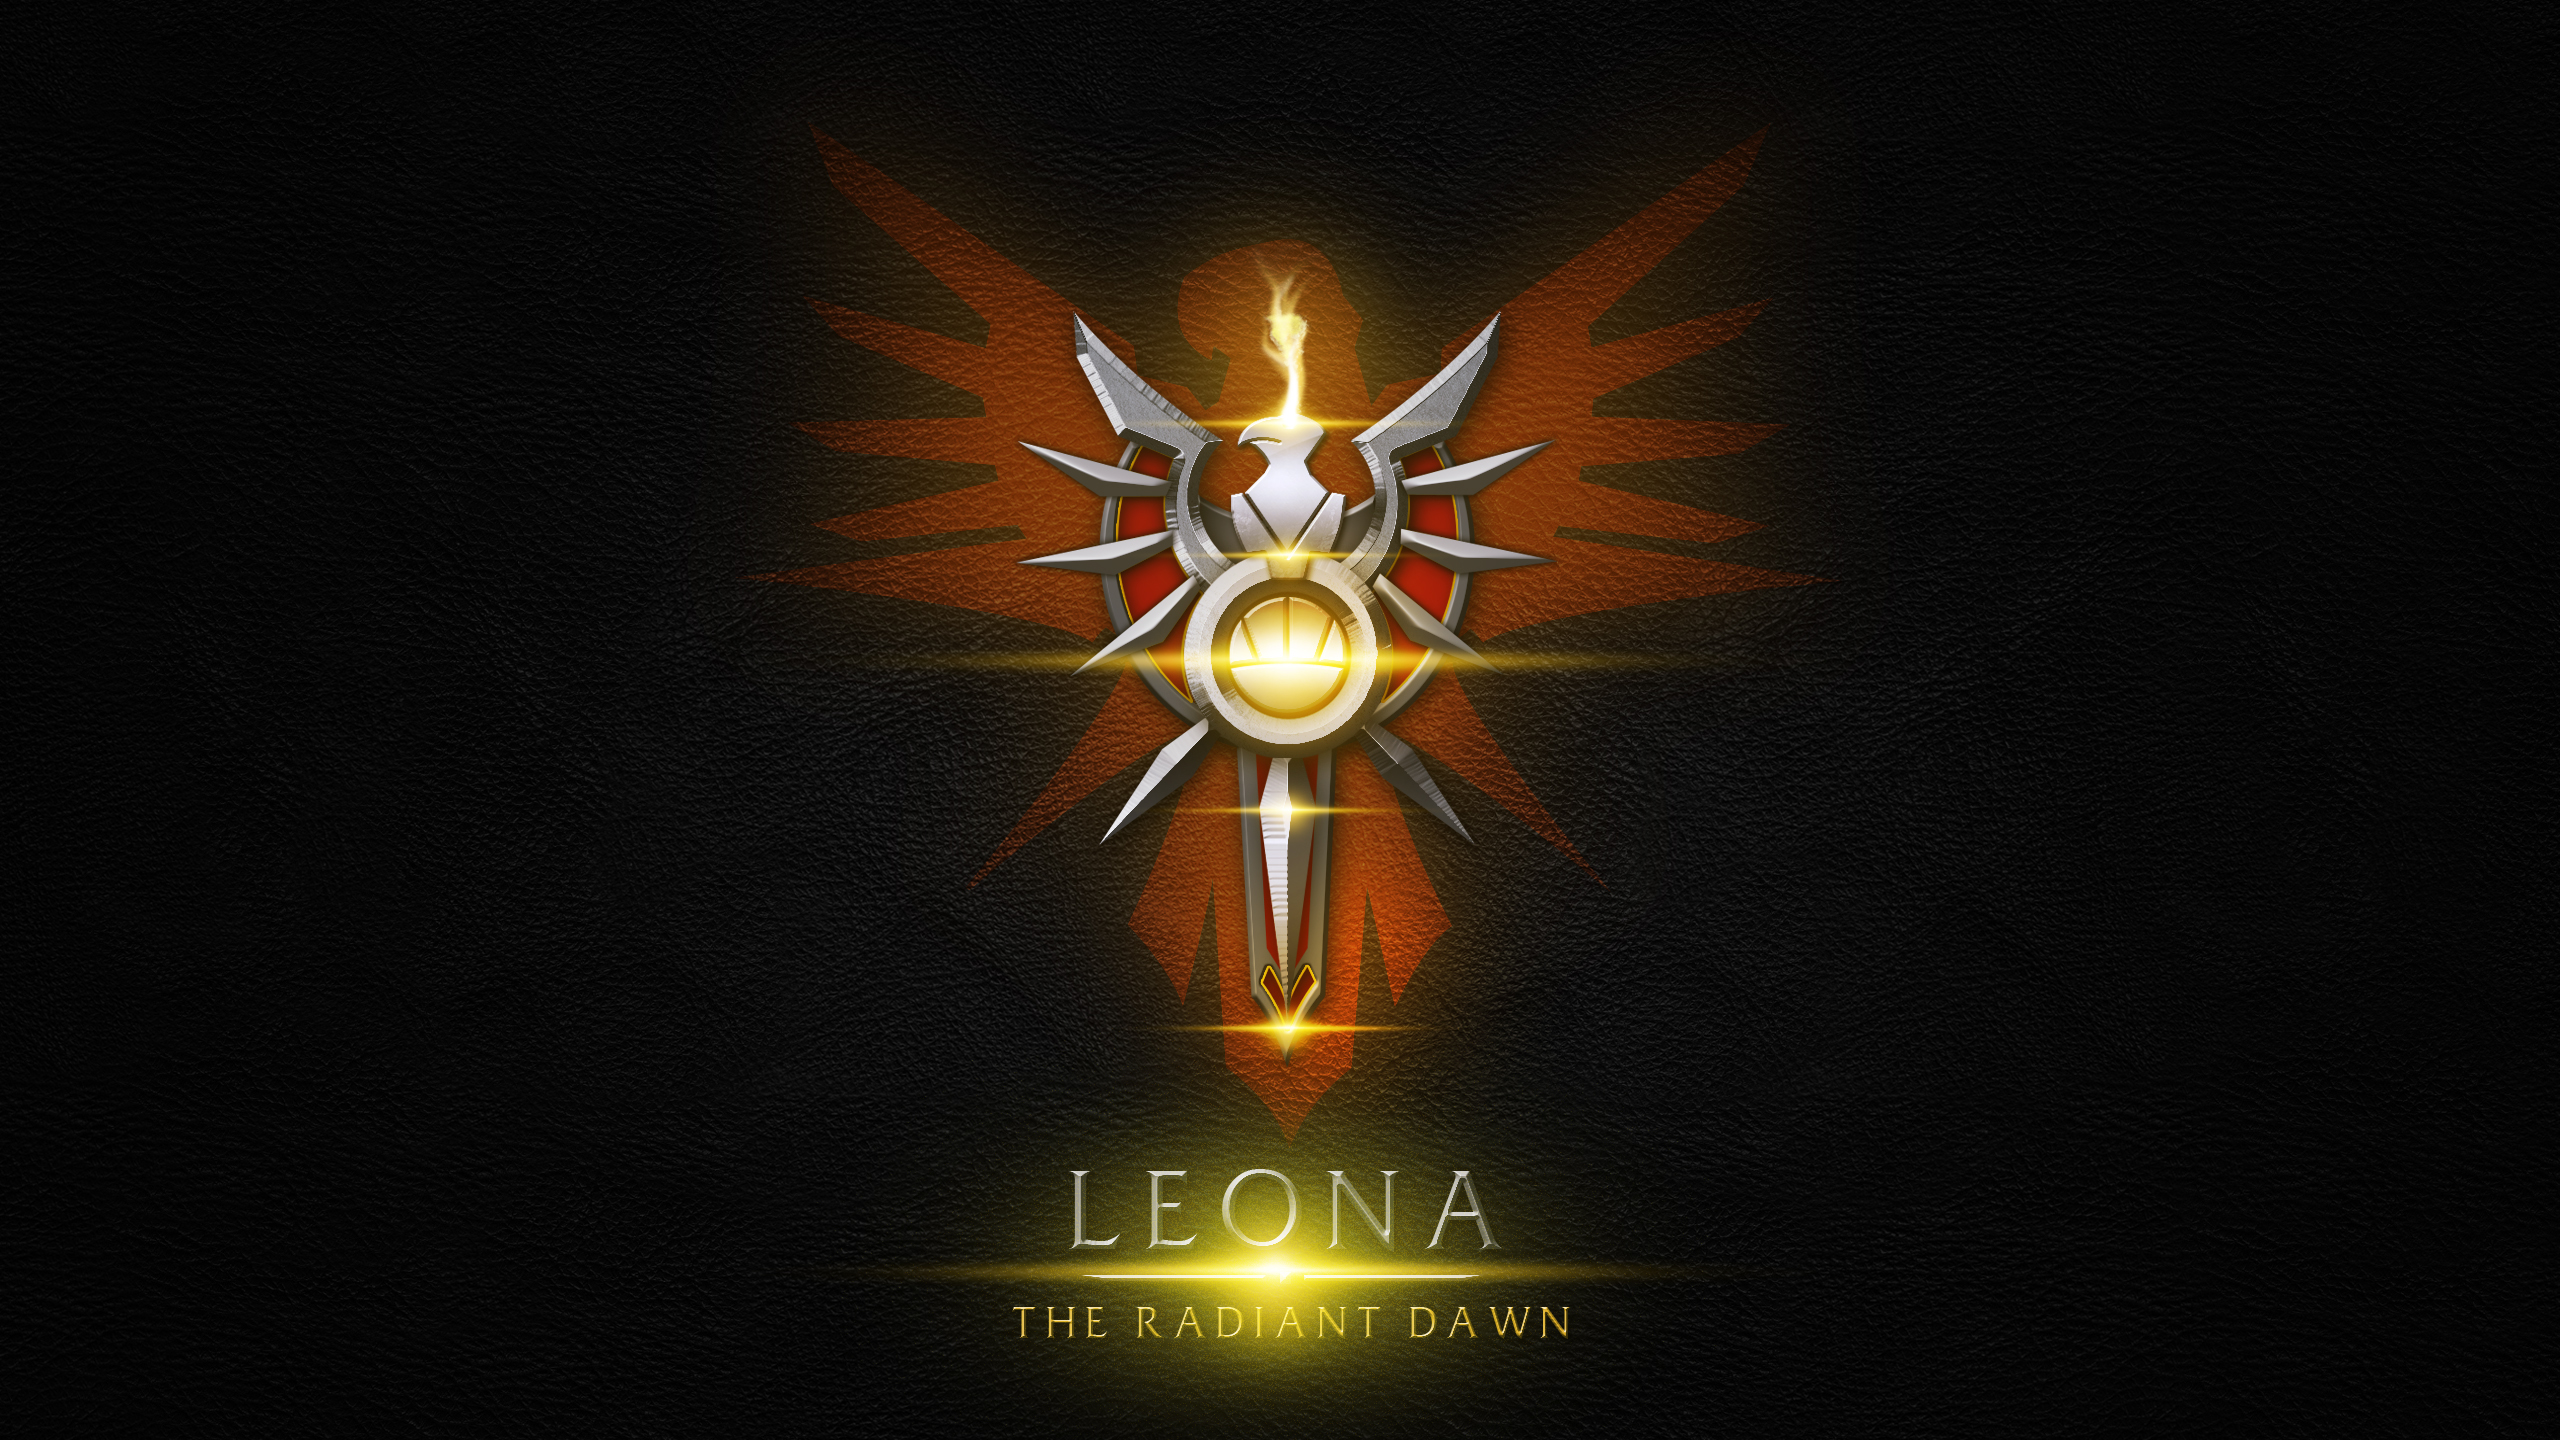 Leona League Of Legends Wallpapers HD 1920x1080